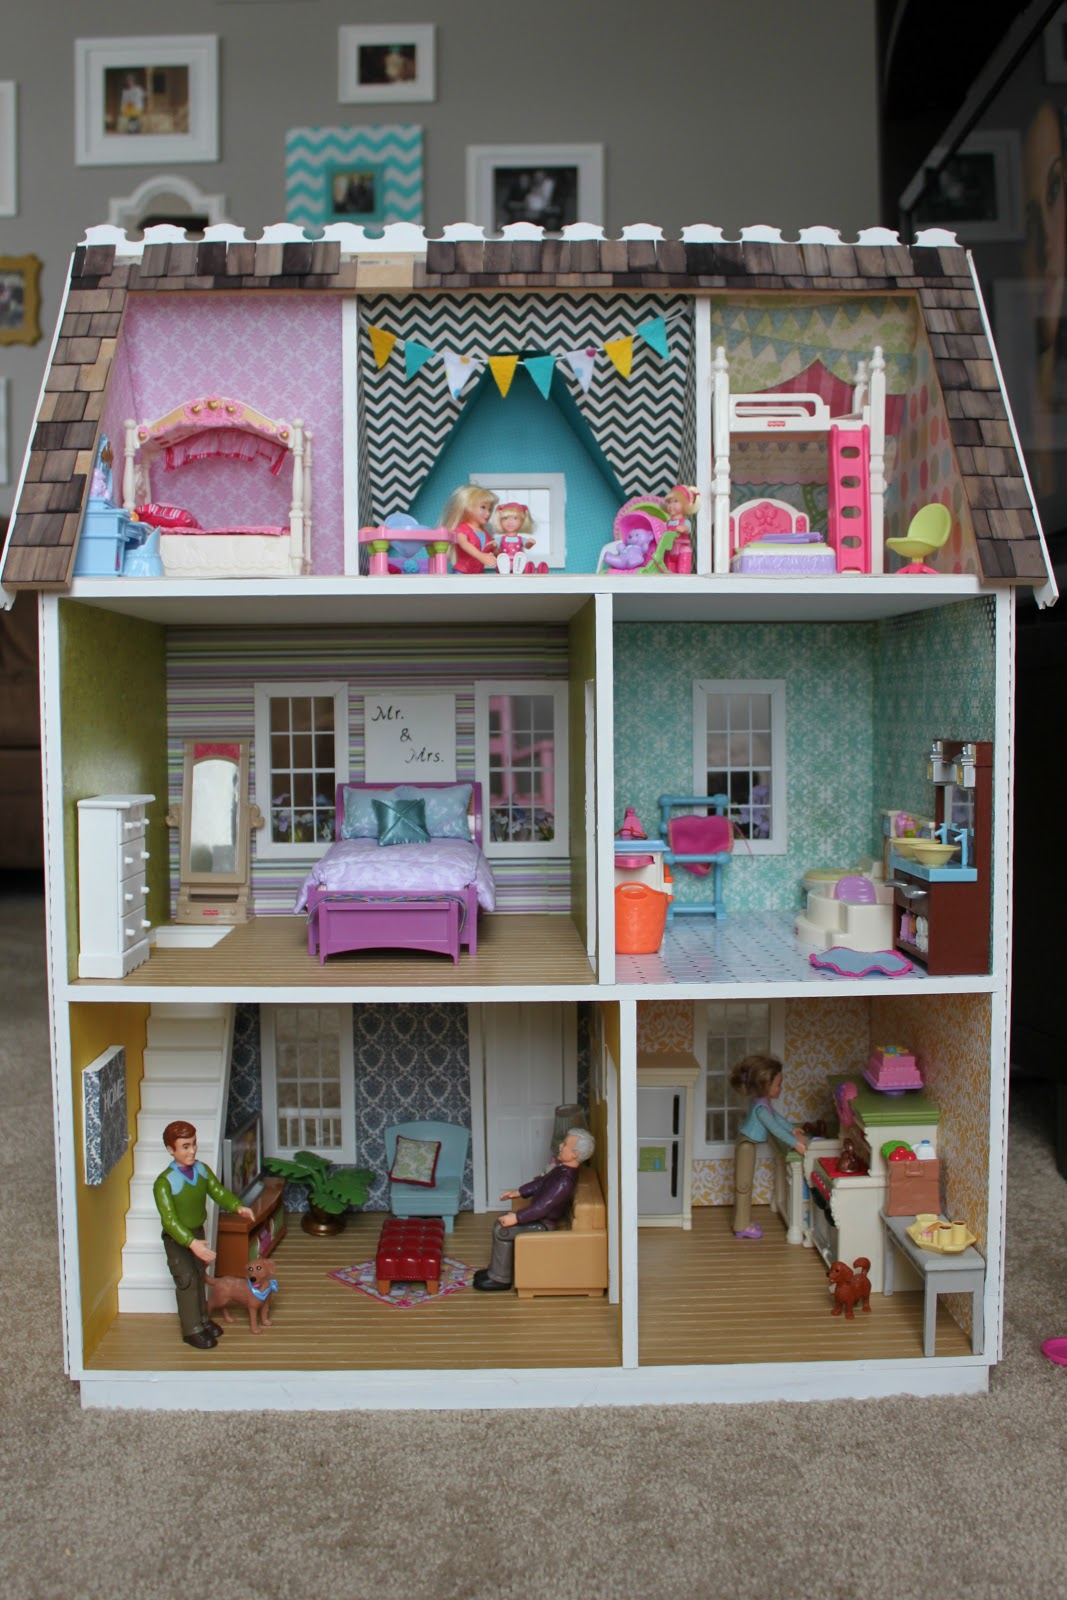 a description of out of a dolls house inot the real world Learn everything you need to know about adapting books into screenplays description and explanation book that connect to how that conflict plays out.